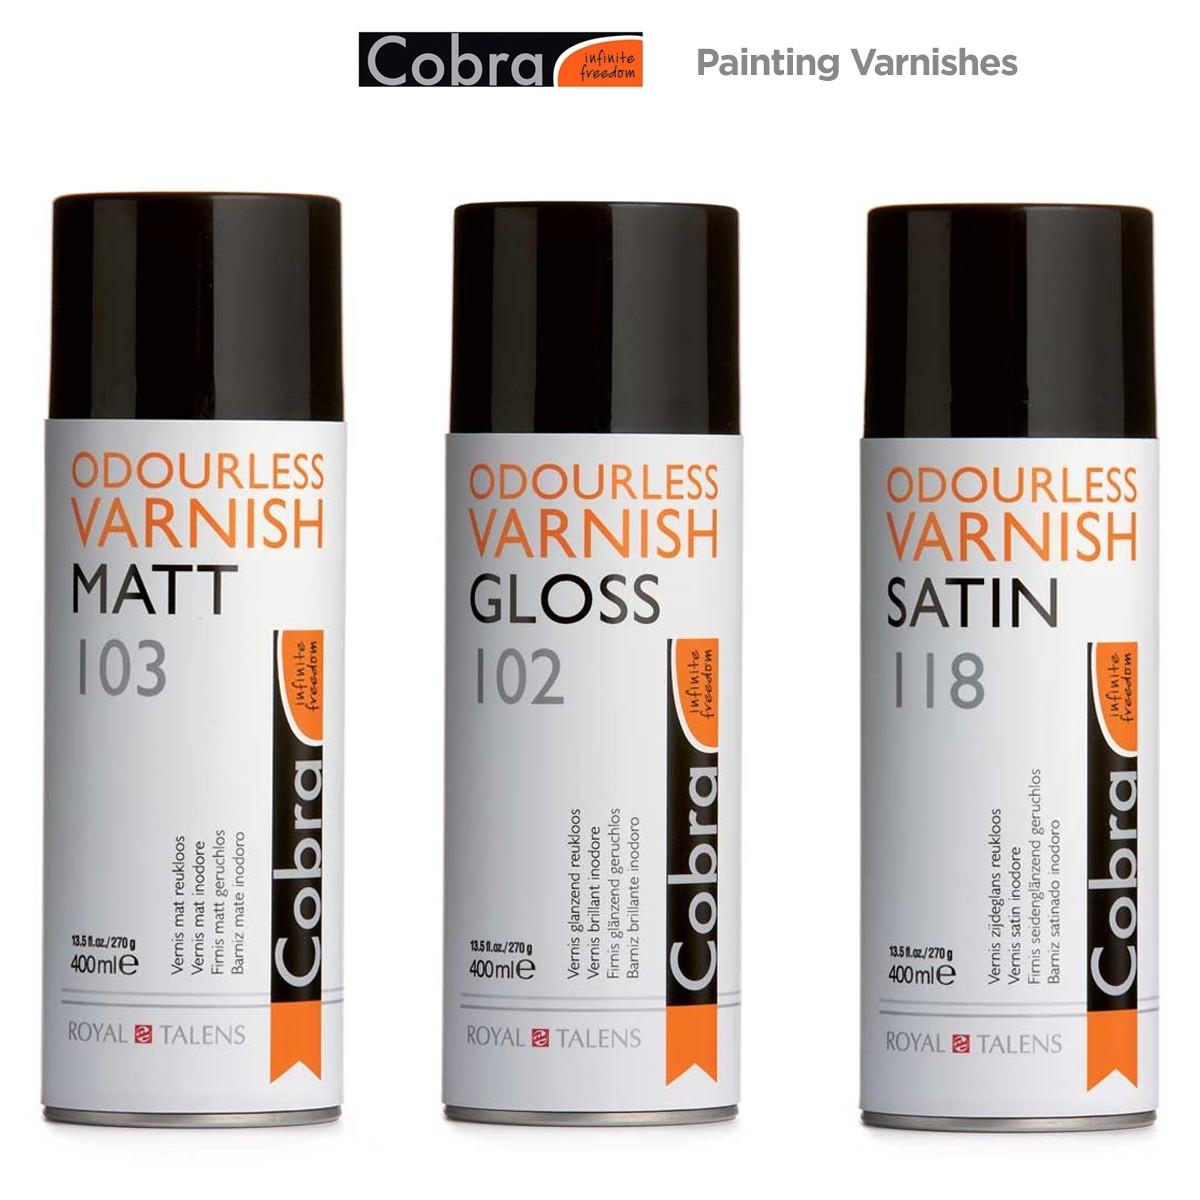 Royal Talens Cobra Painting Varnishes